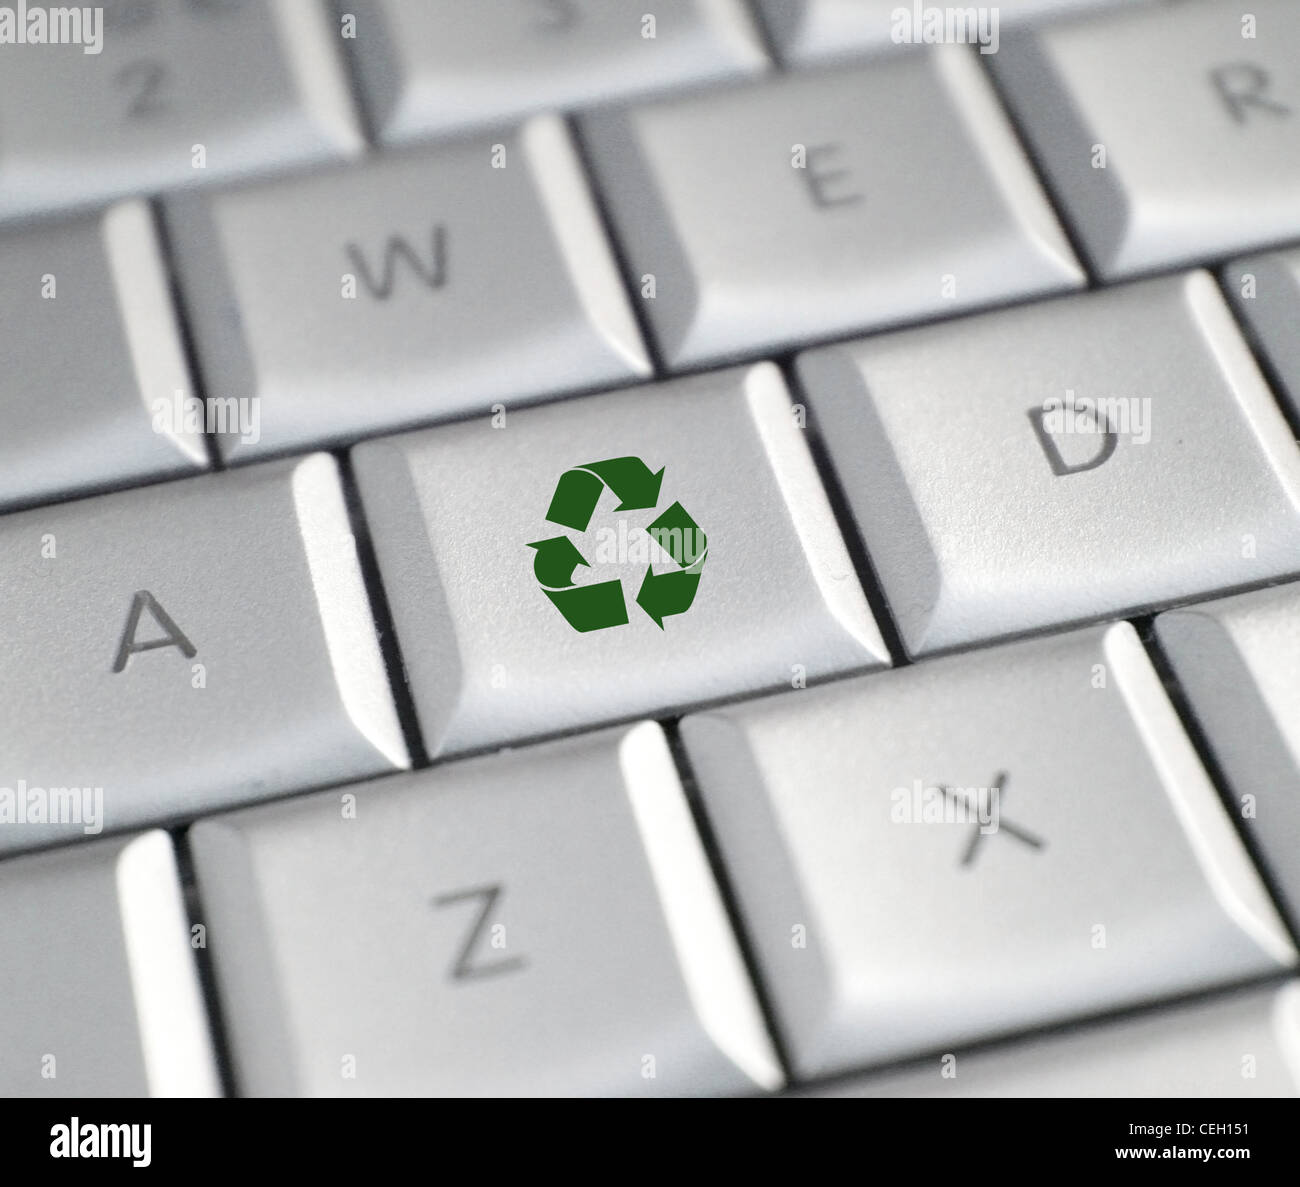 Recycle key - Stock Image